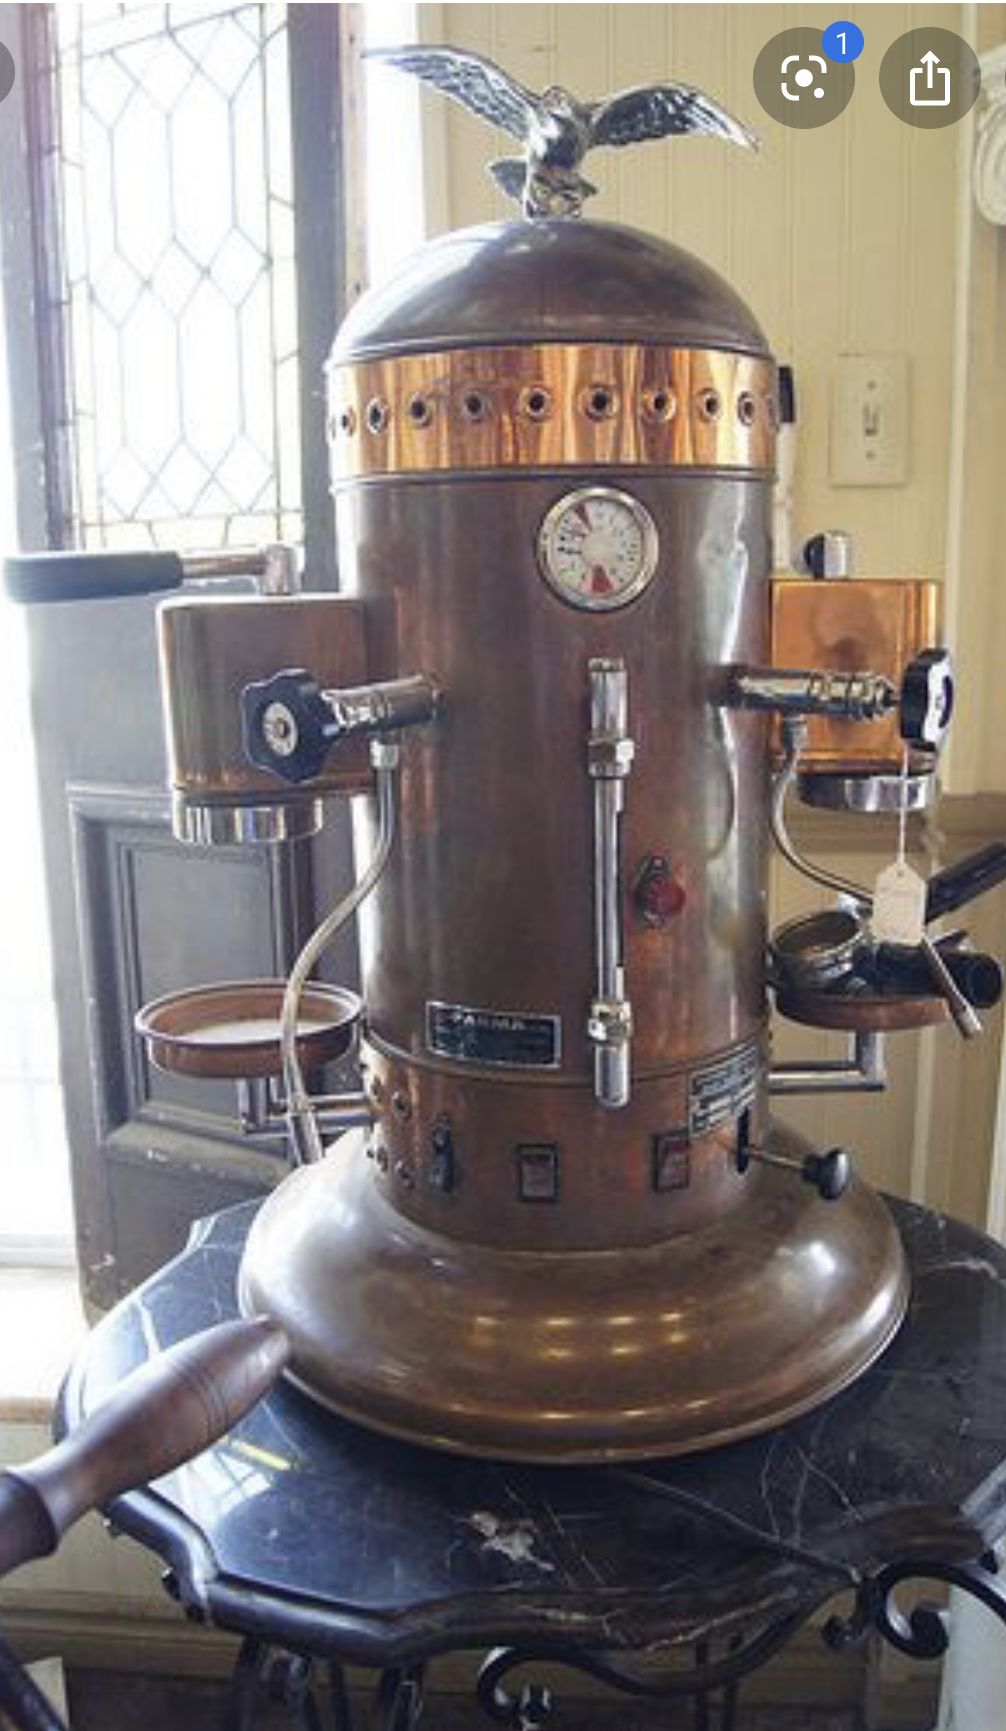 Pin by Pamela McNeill on Vintage Coffee Machines +Sundries